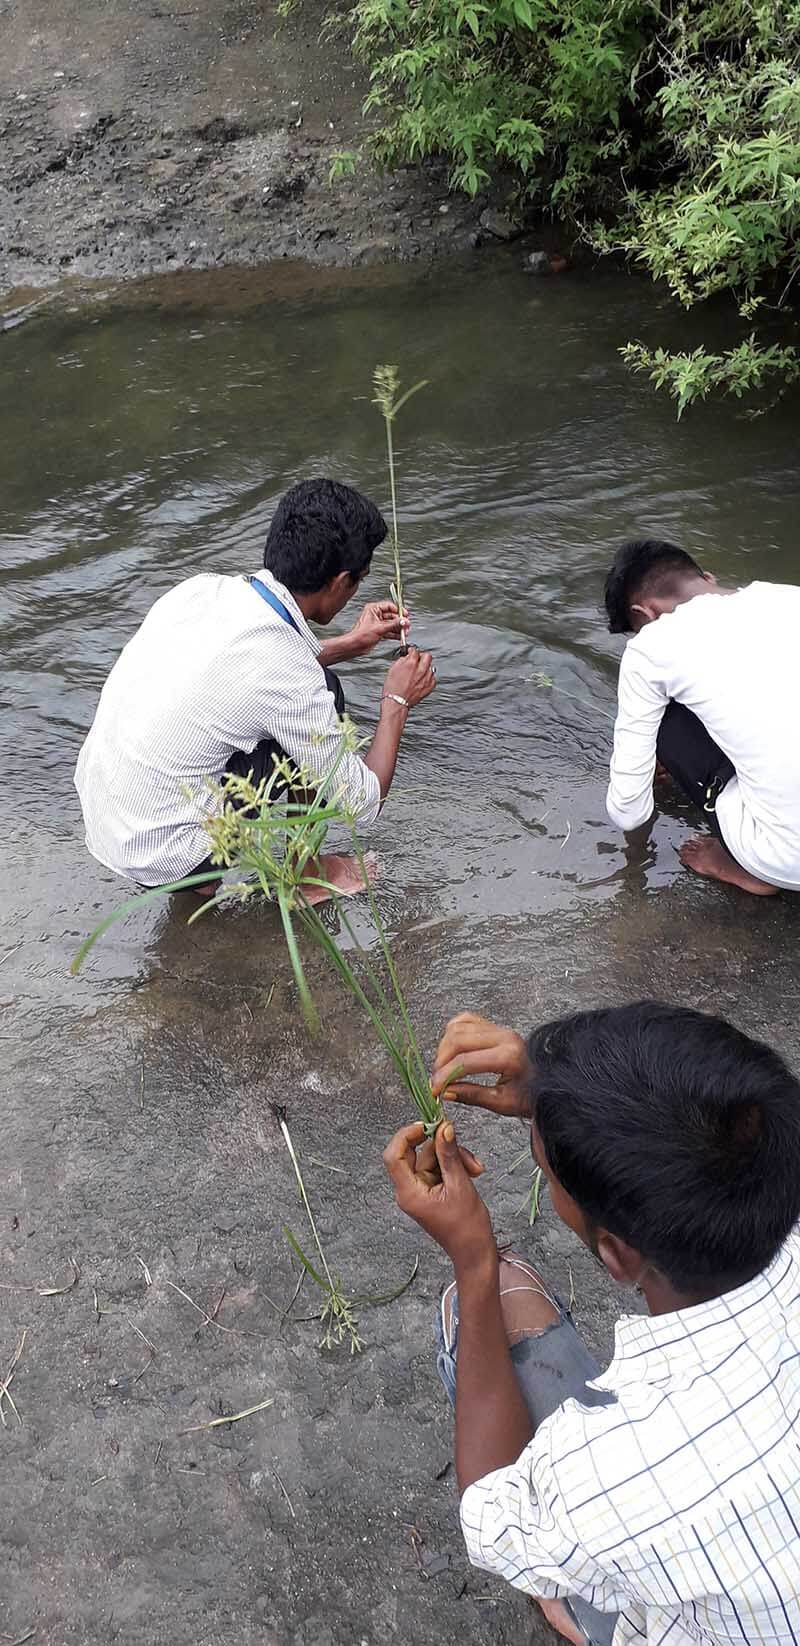 lavhan grass in river